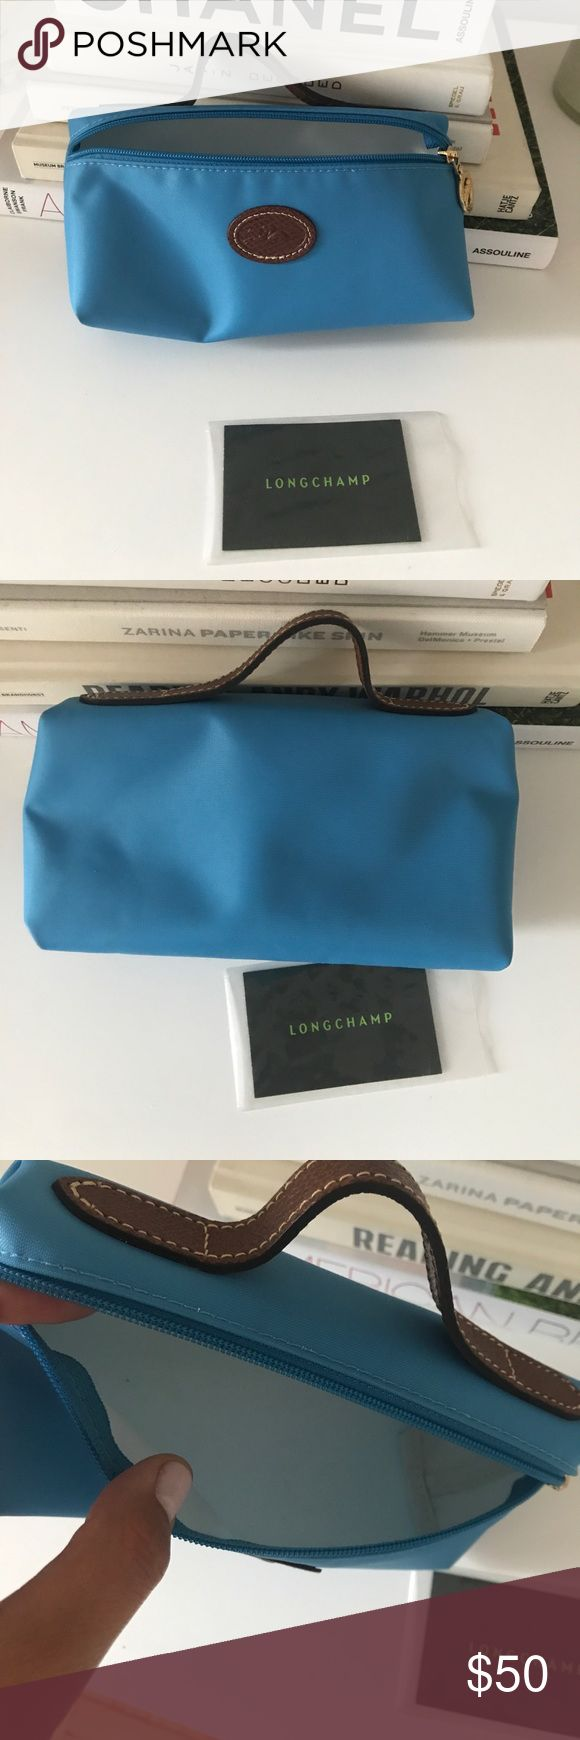 NWT Longchamp small makeup bag Longchamp small makeup bag, NWT! I also have a light pink one (with a small stain) listed in my Poshmark closet too! Longchamp Bags Cosmetic Bags & Cases